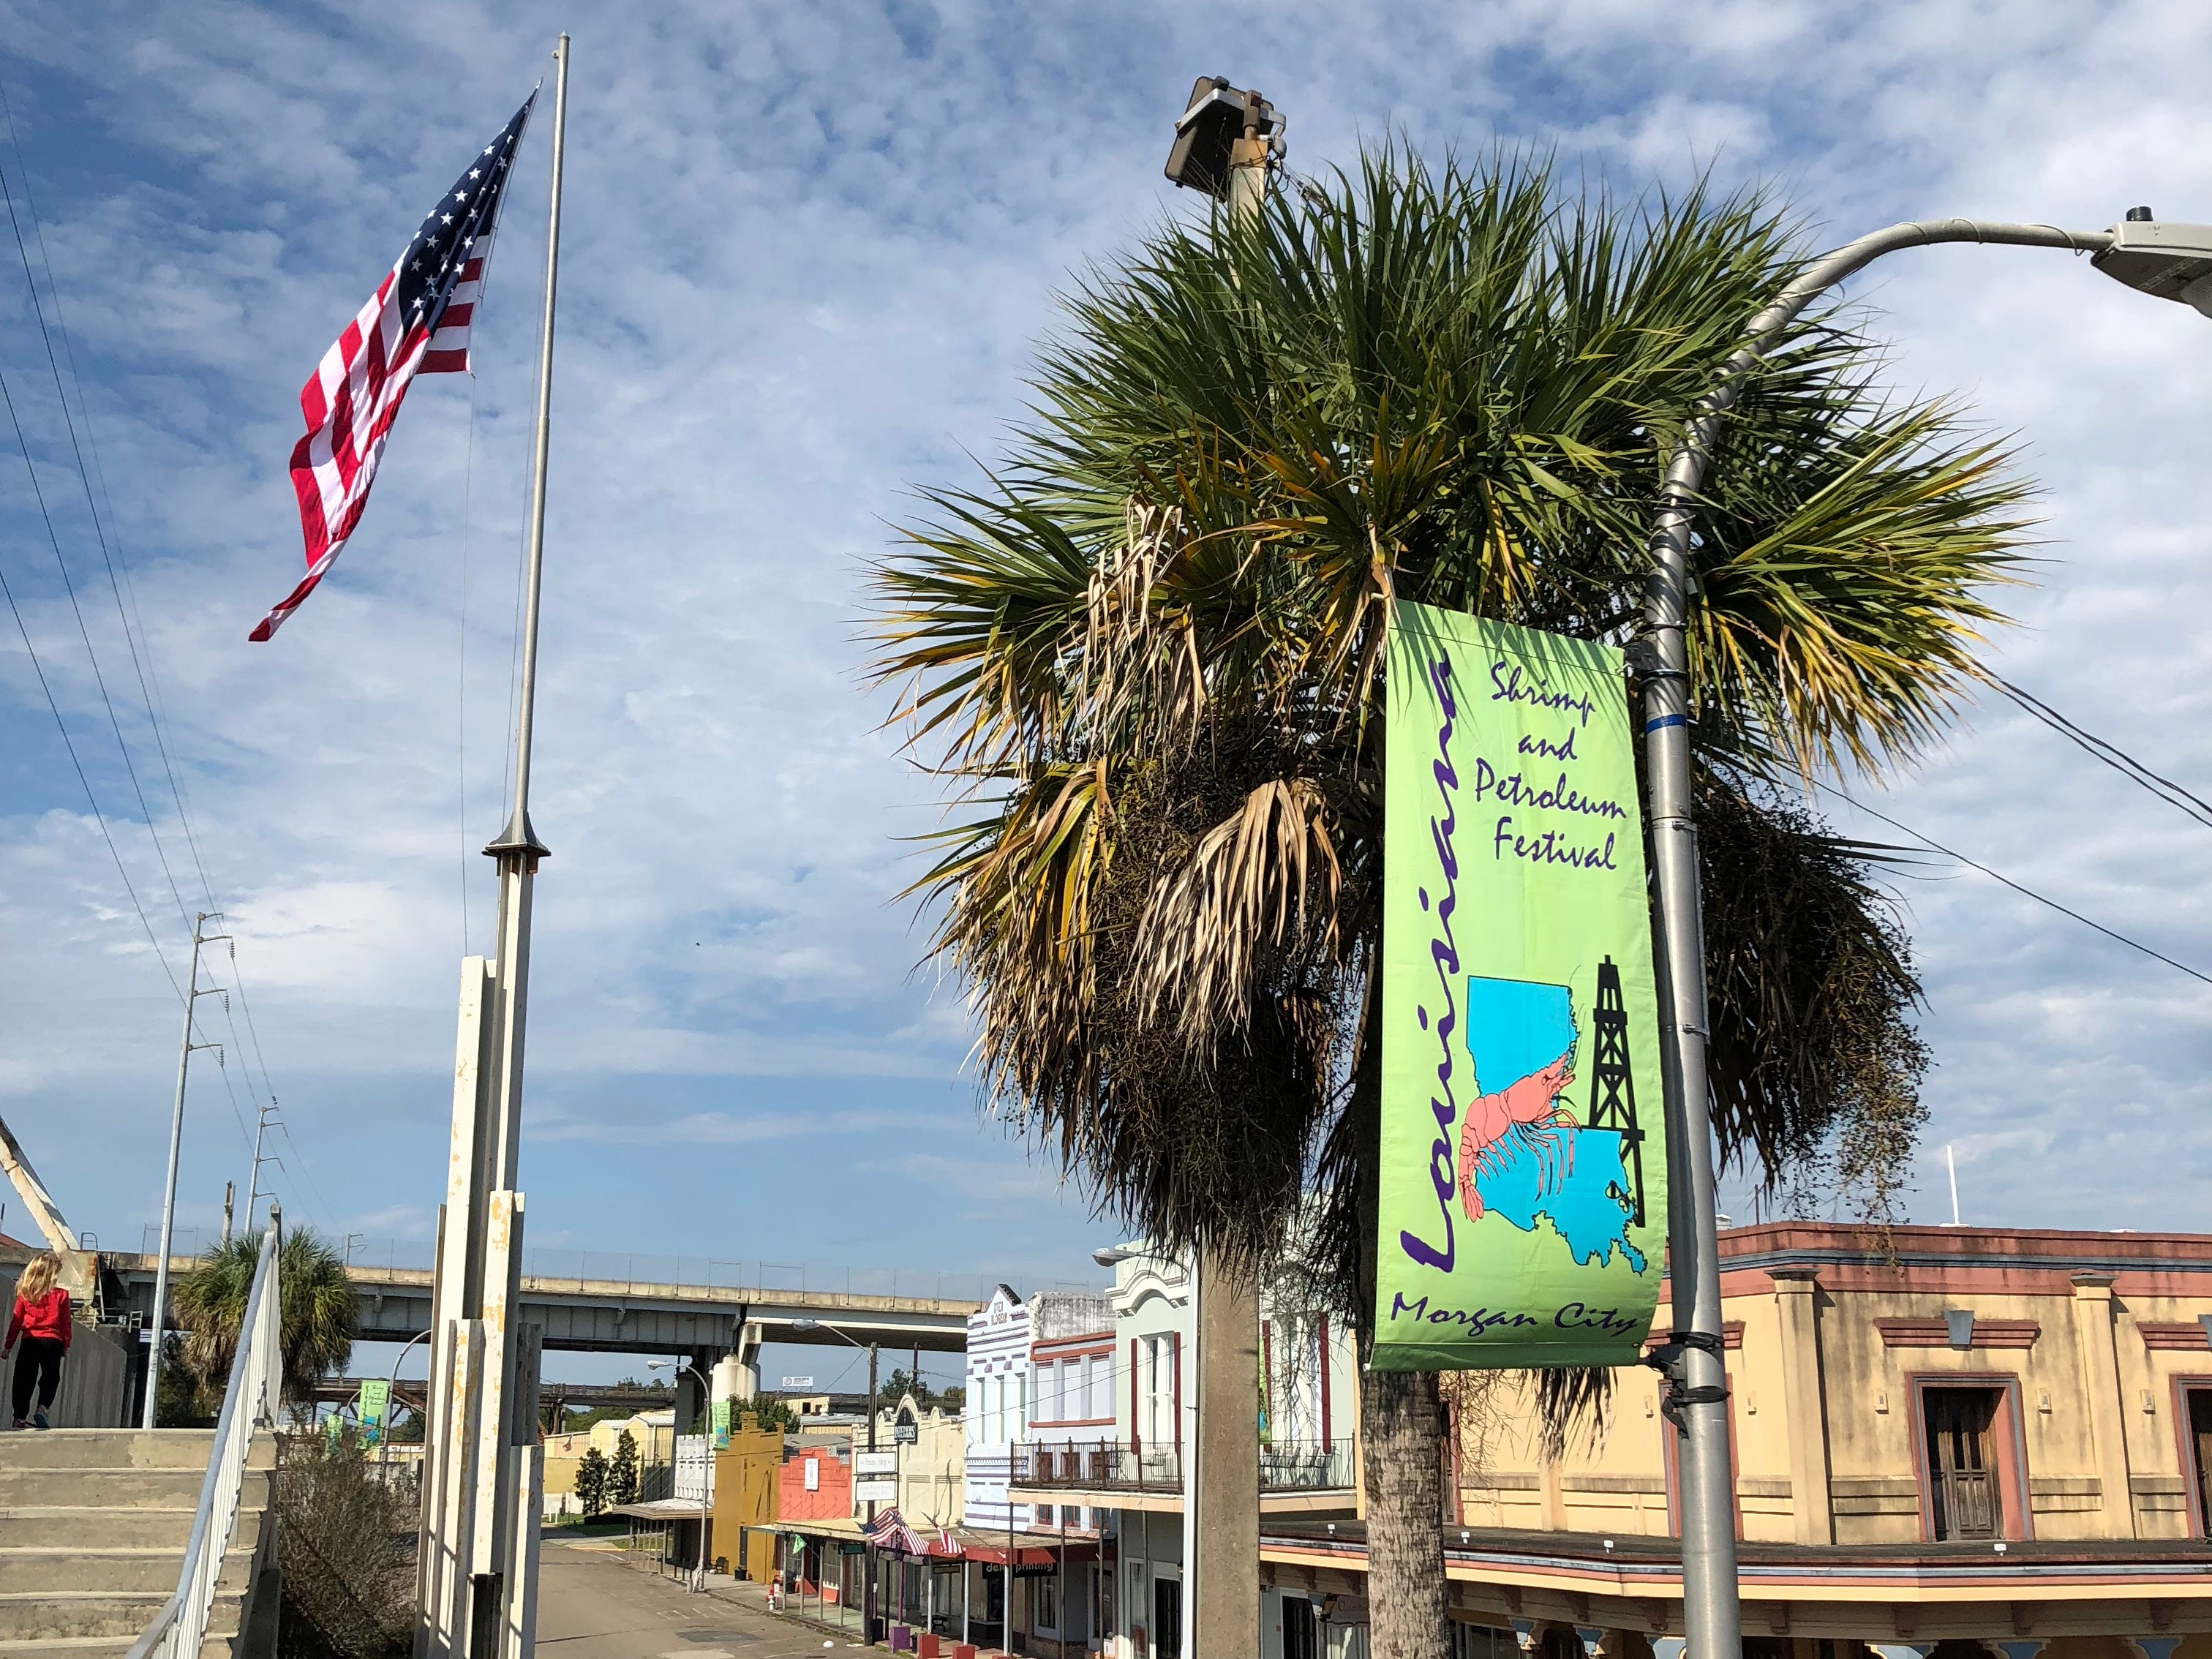 """Travel and tourism reporter Leigh Guidry and her family check out Morgan City as they tour the Bayou Teche Byway. The """"Great Wall"""" overlooks historic Front Street and the Atchafalaya. The city is known for its annual Shrimp and Petroleum Festival."""